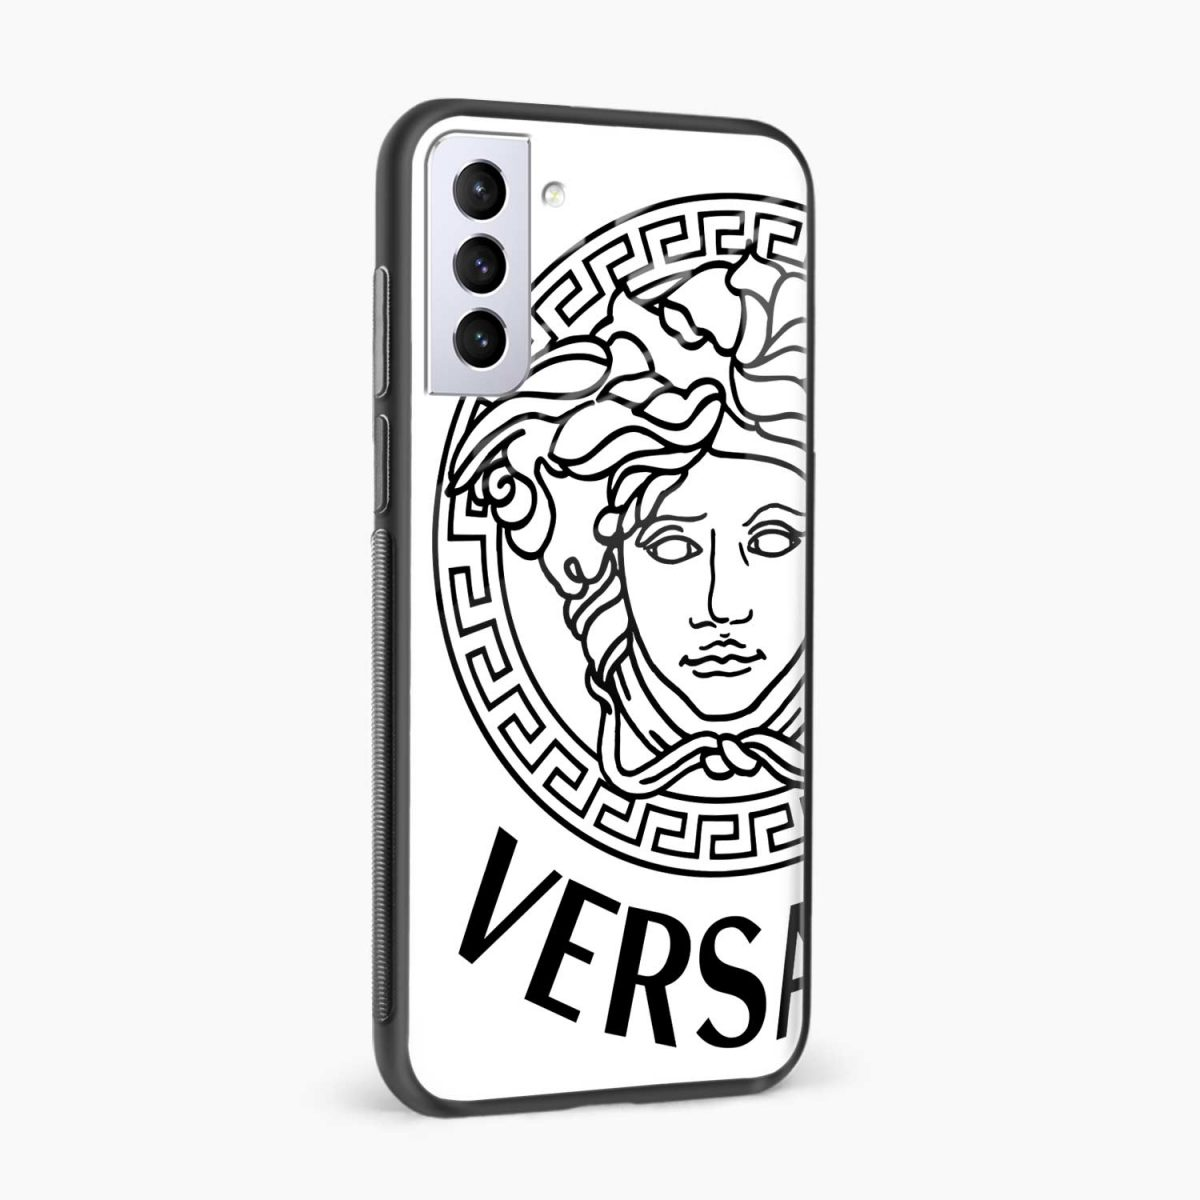 versace black white side view samsung s21 plug back cover